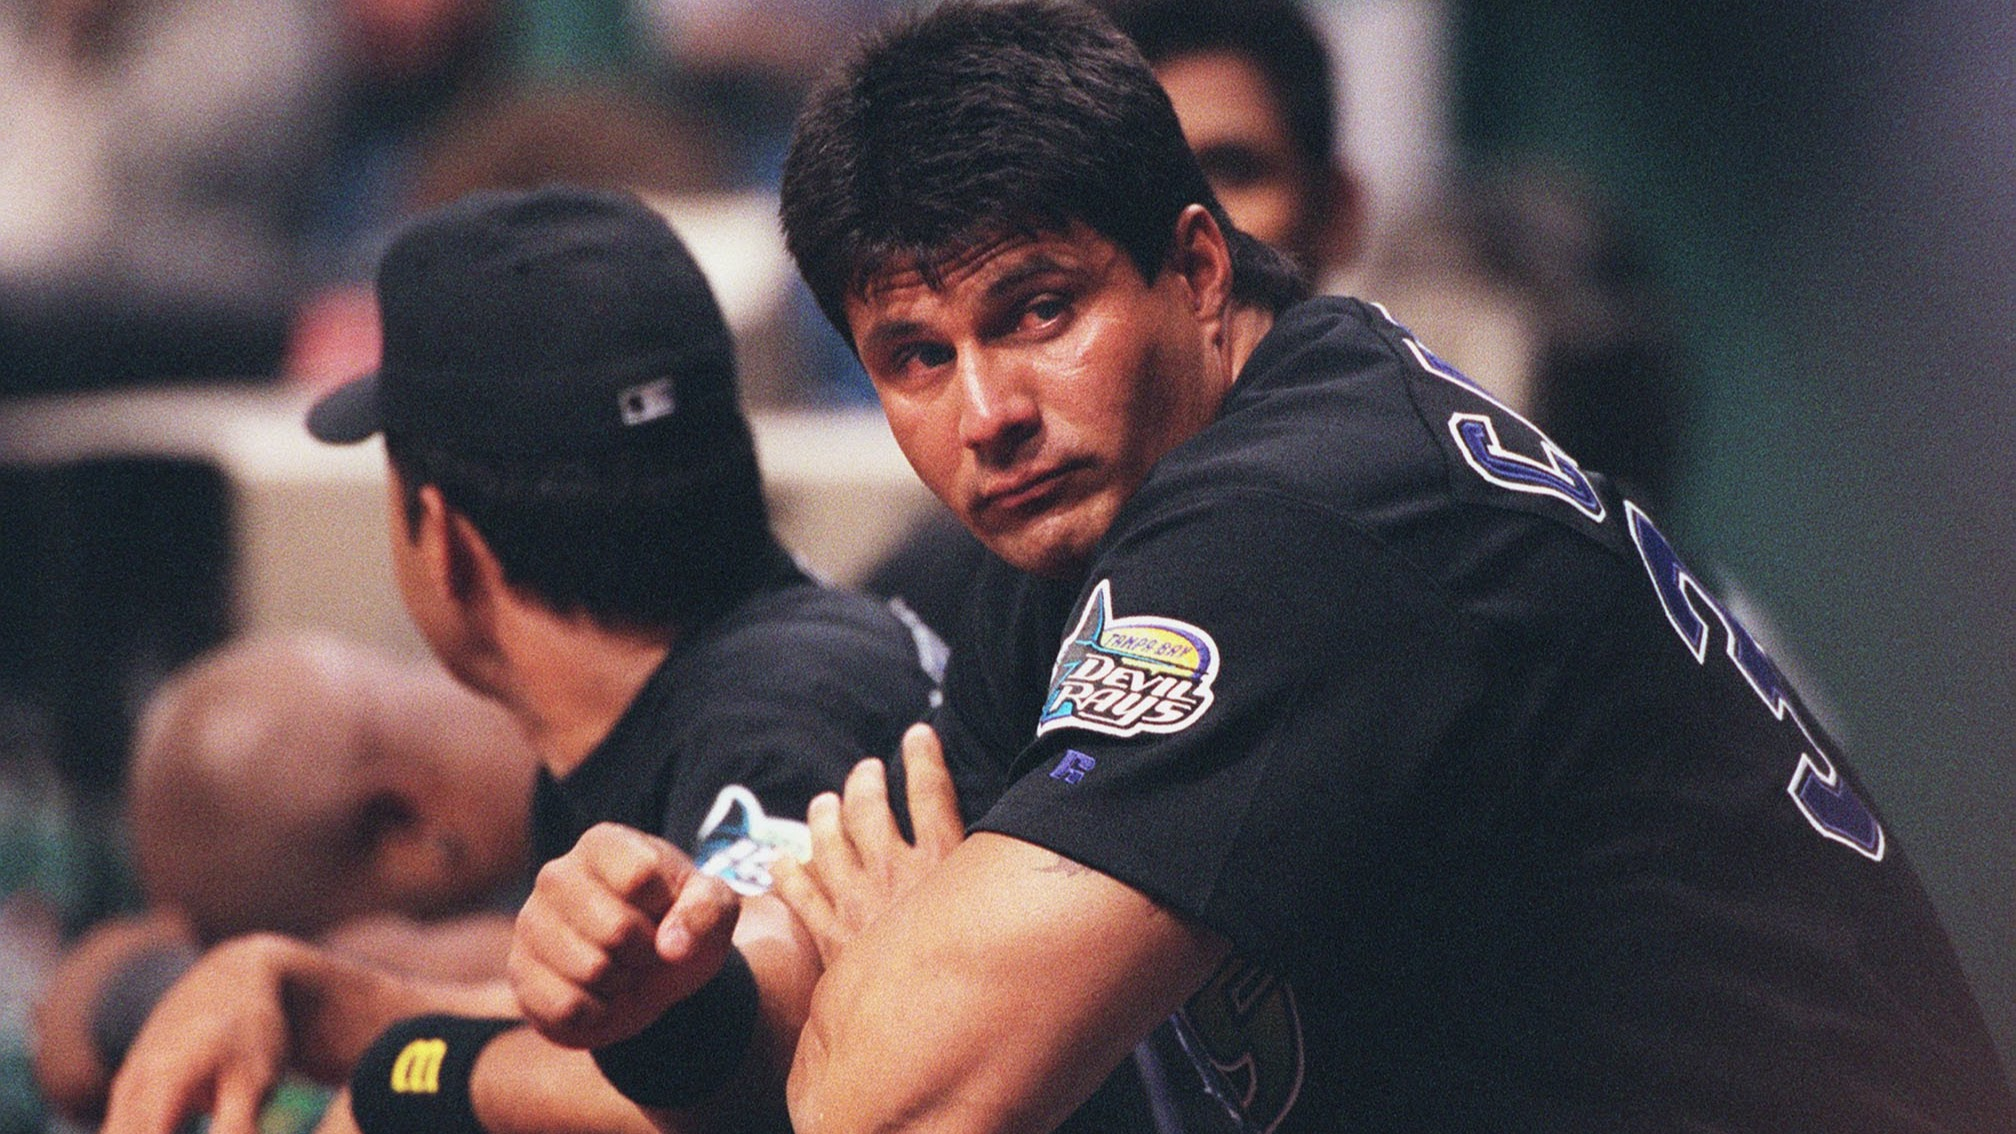 Designated hitter Jose Canseco and the Rays' much ballyhooed